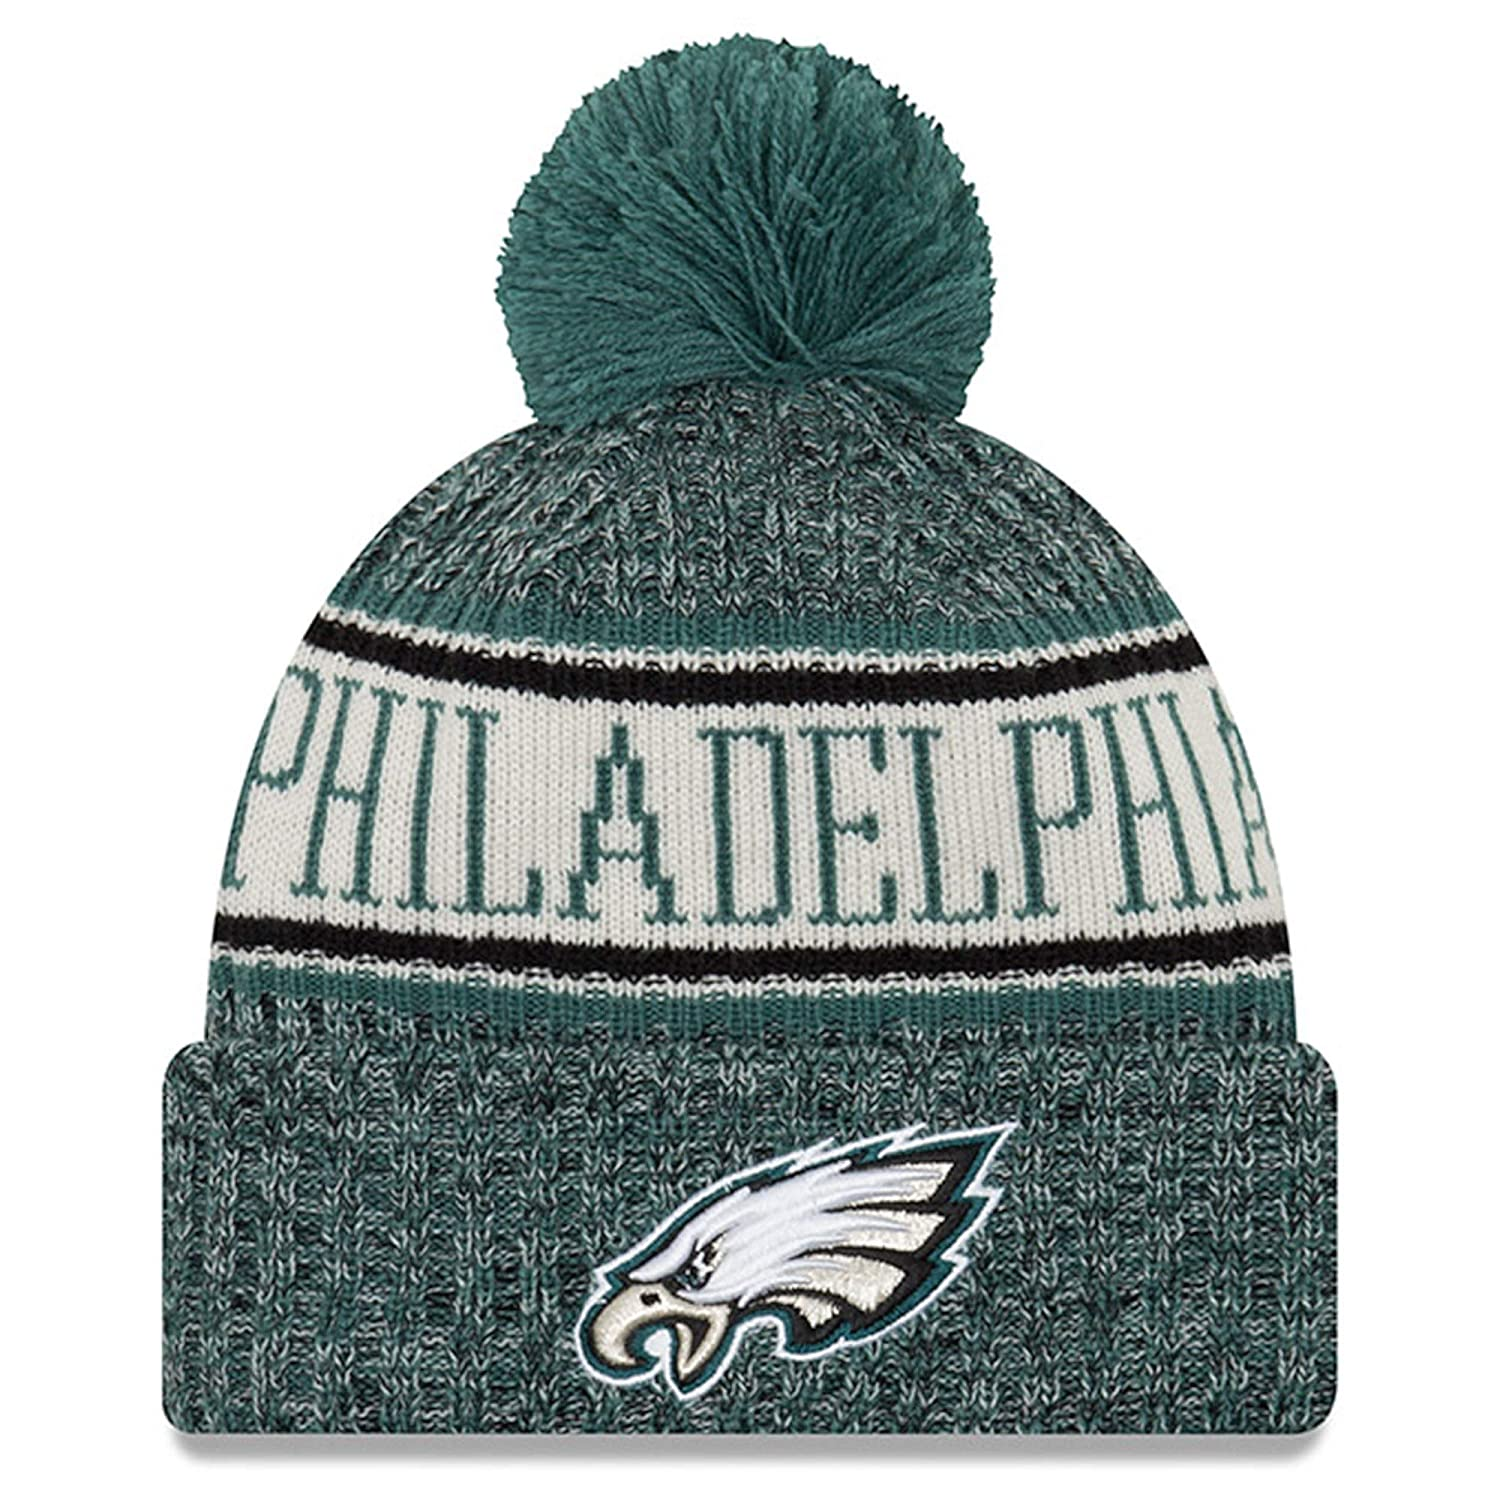 sneakers for cheap 03520 a5933 Amazon.com   New Era Youth Philadelphia Eagles Sport Knit NFL Beanie Black,  Jr.  Youth   Sports   Outdoors